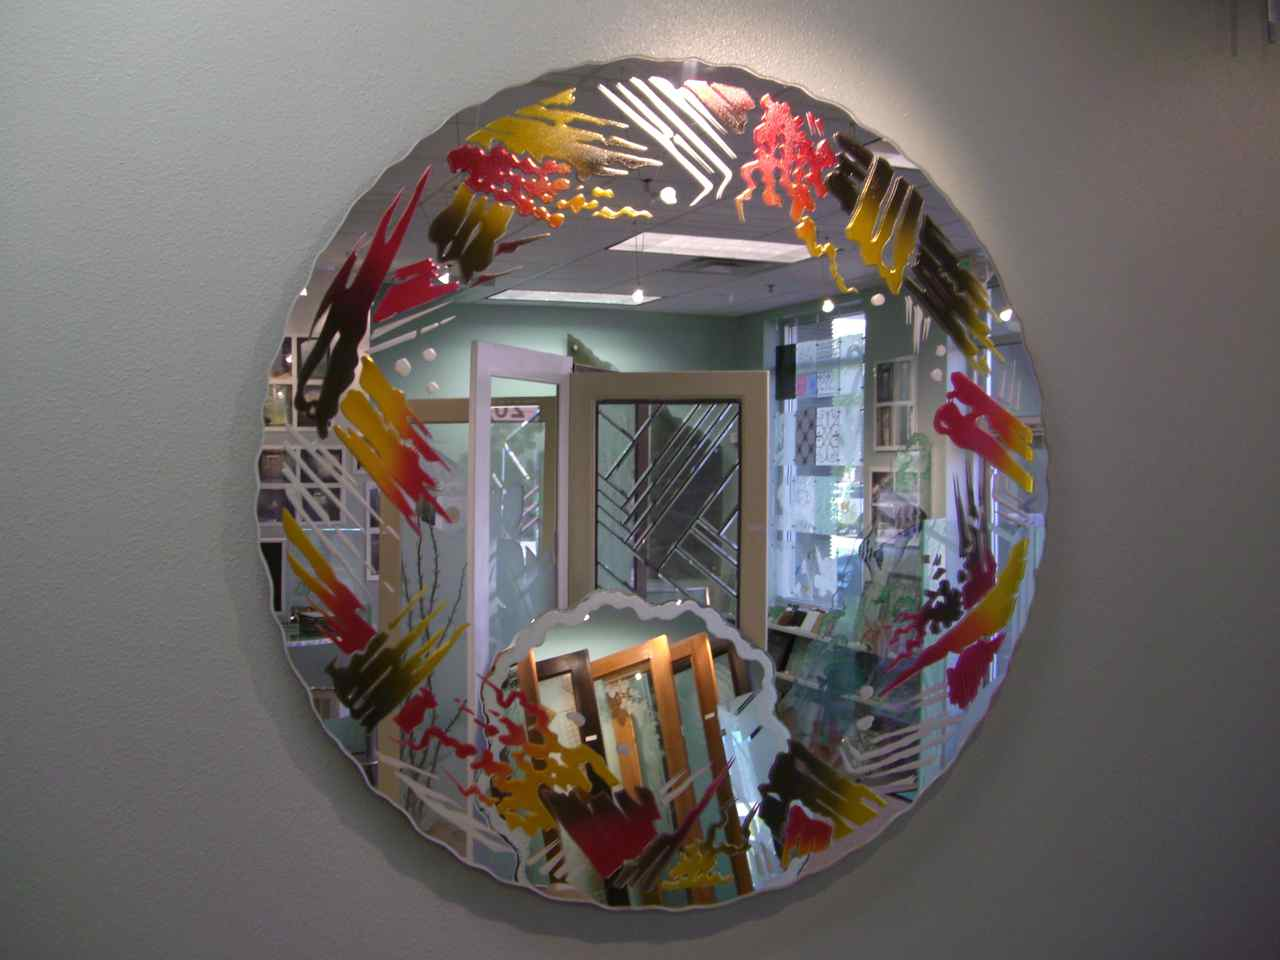 Mirrors sans soucie art glass for Mirror glass design